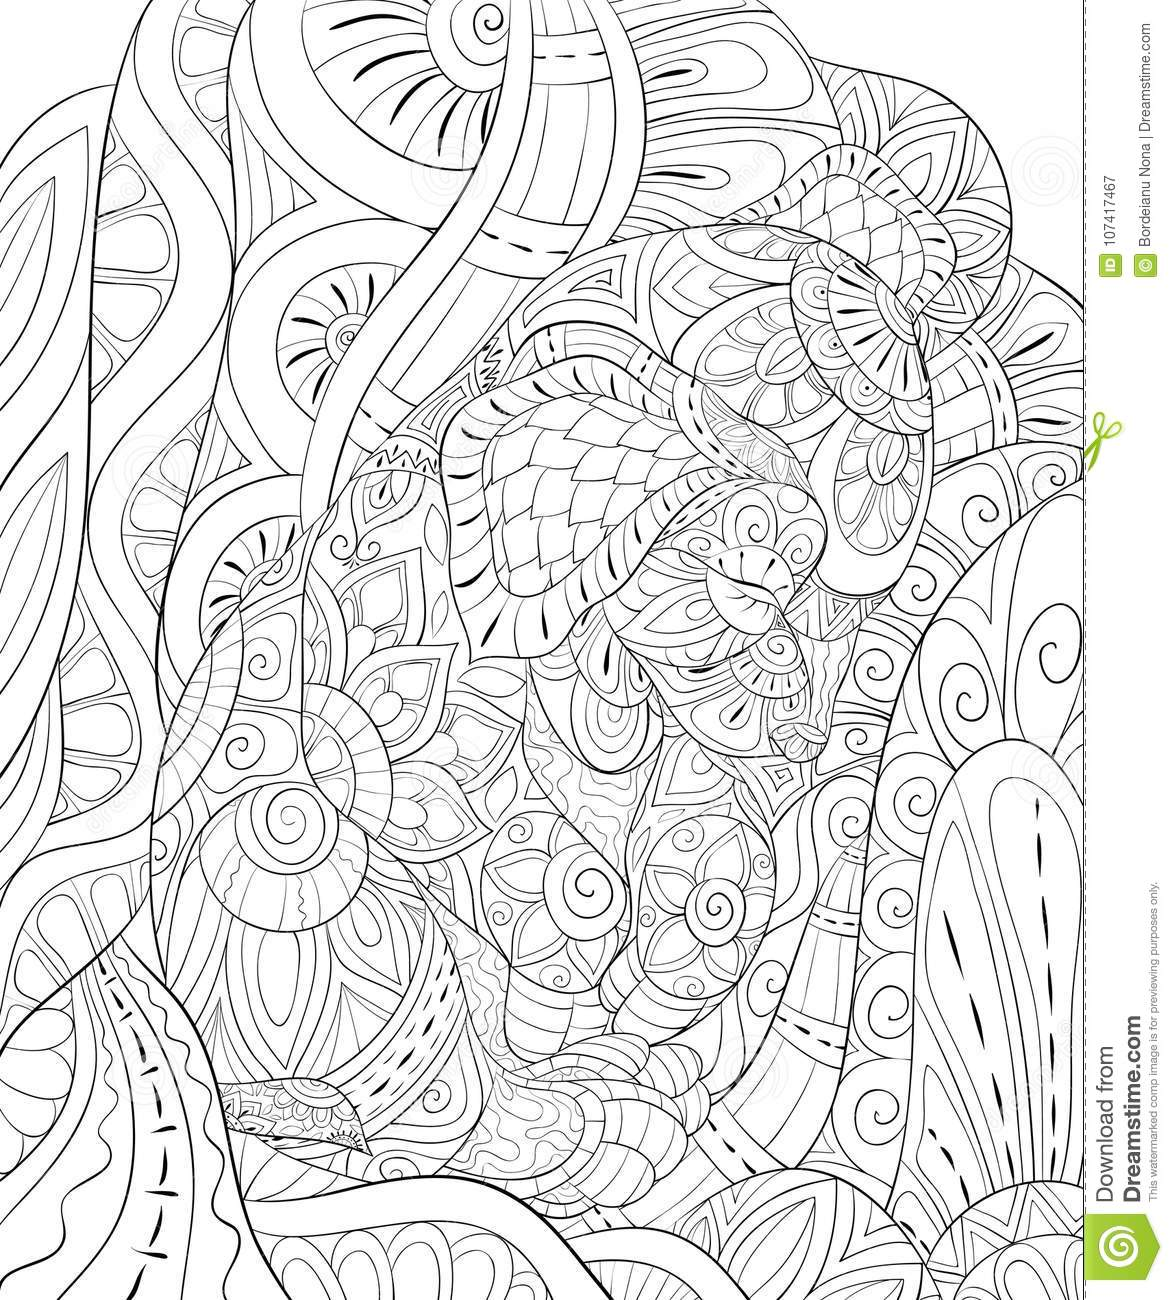 Adult Coloring Bookpage A Cute Little Sleep Dog On The Abstract Background For RelaxingZen Art Style Illustration